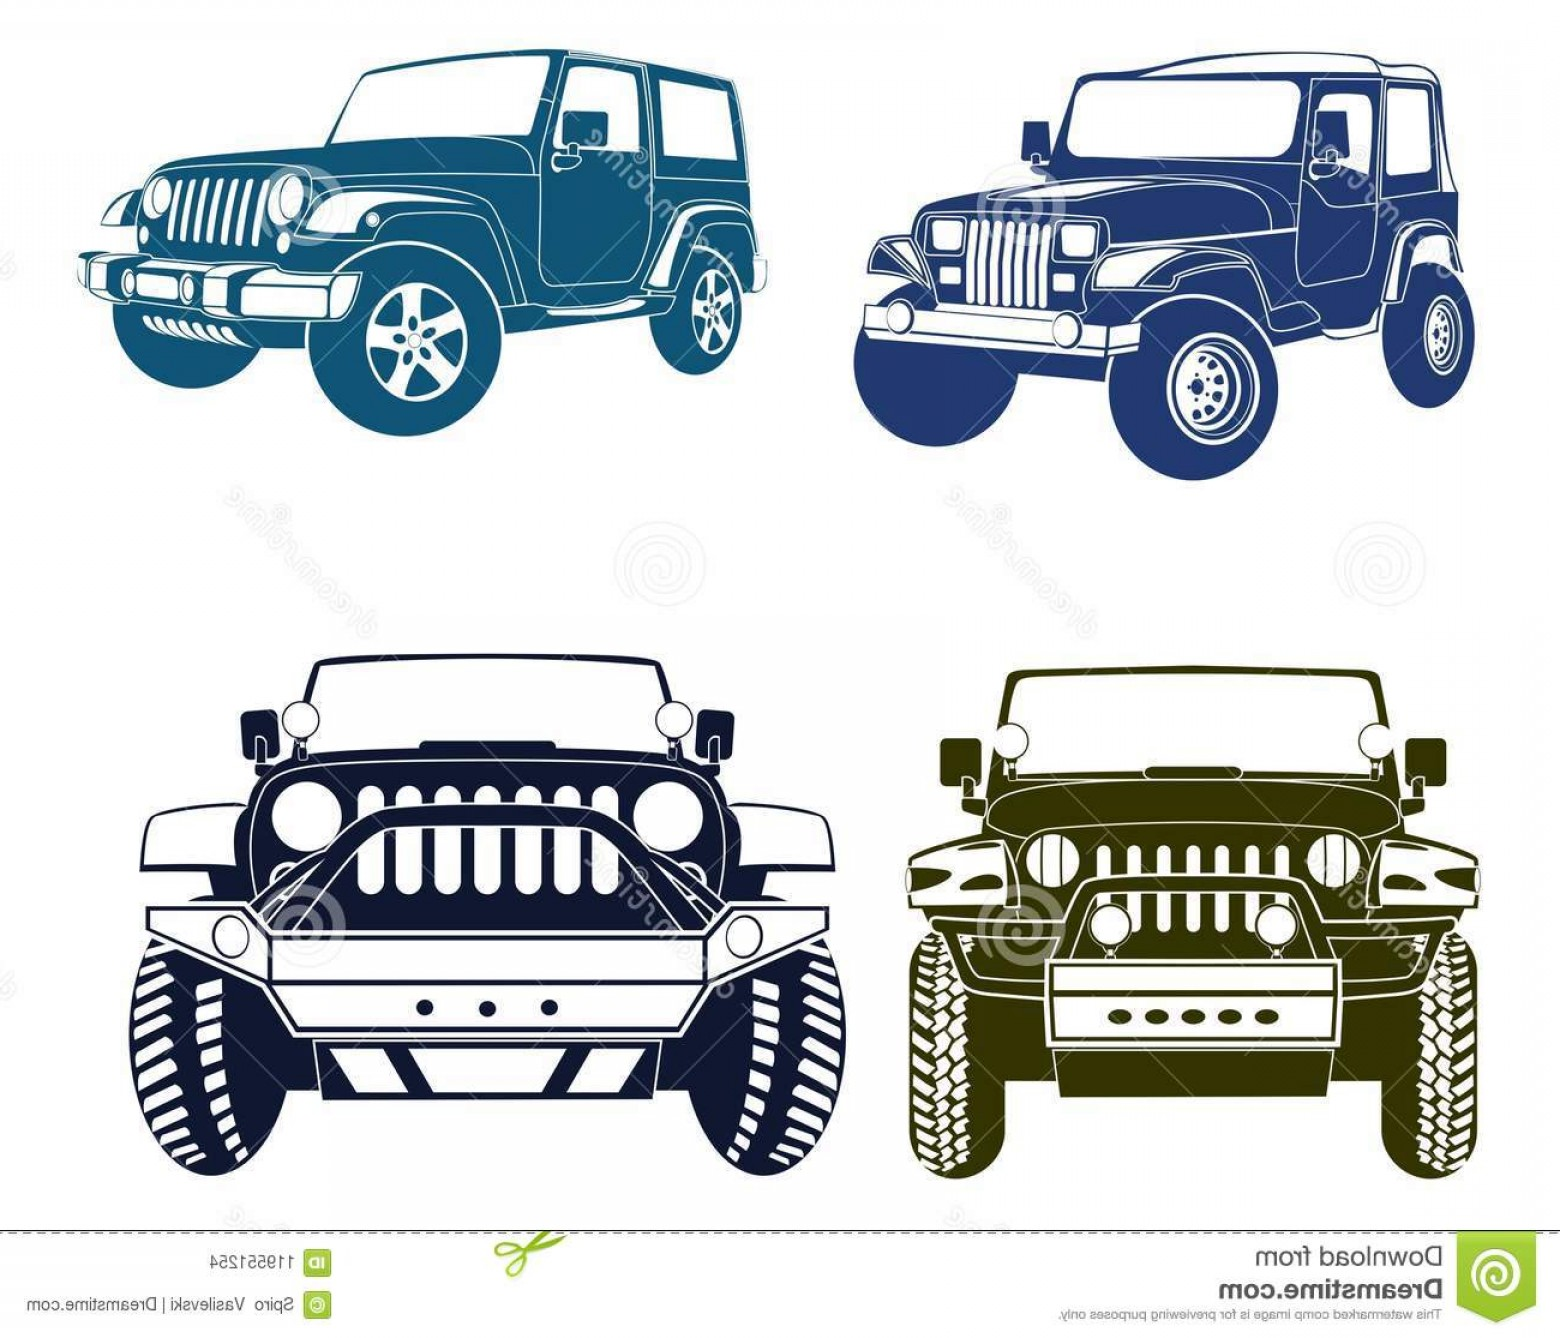 Jeep Tire Vector: Four Vector Jeep Silhouettes Four Vector Jeep Silhouettes Old New Models Wrangler Series Image